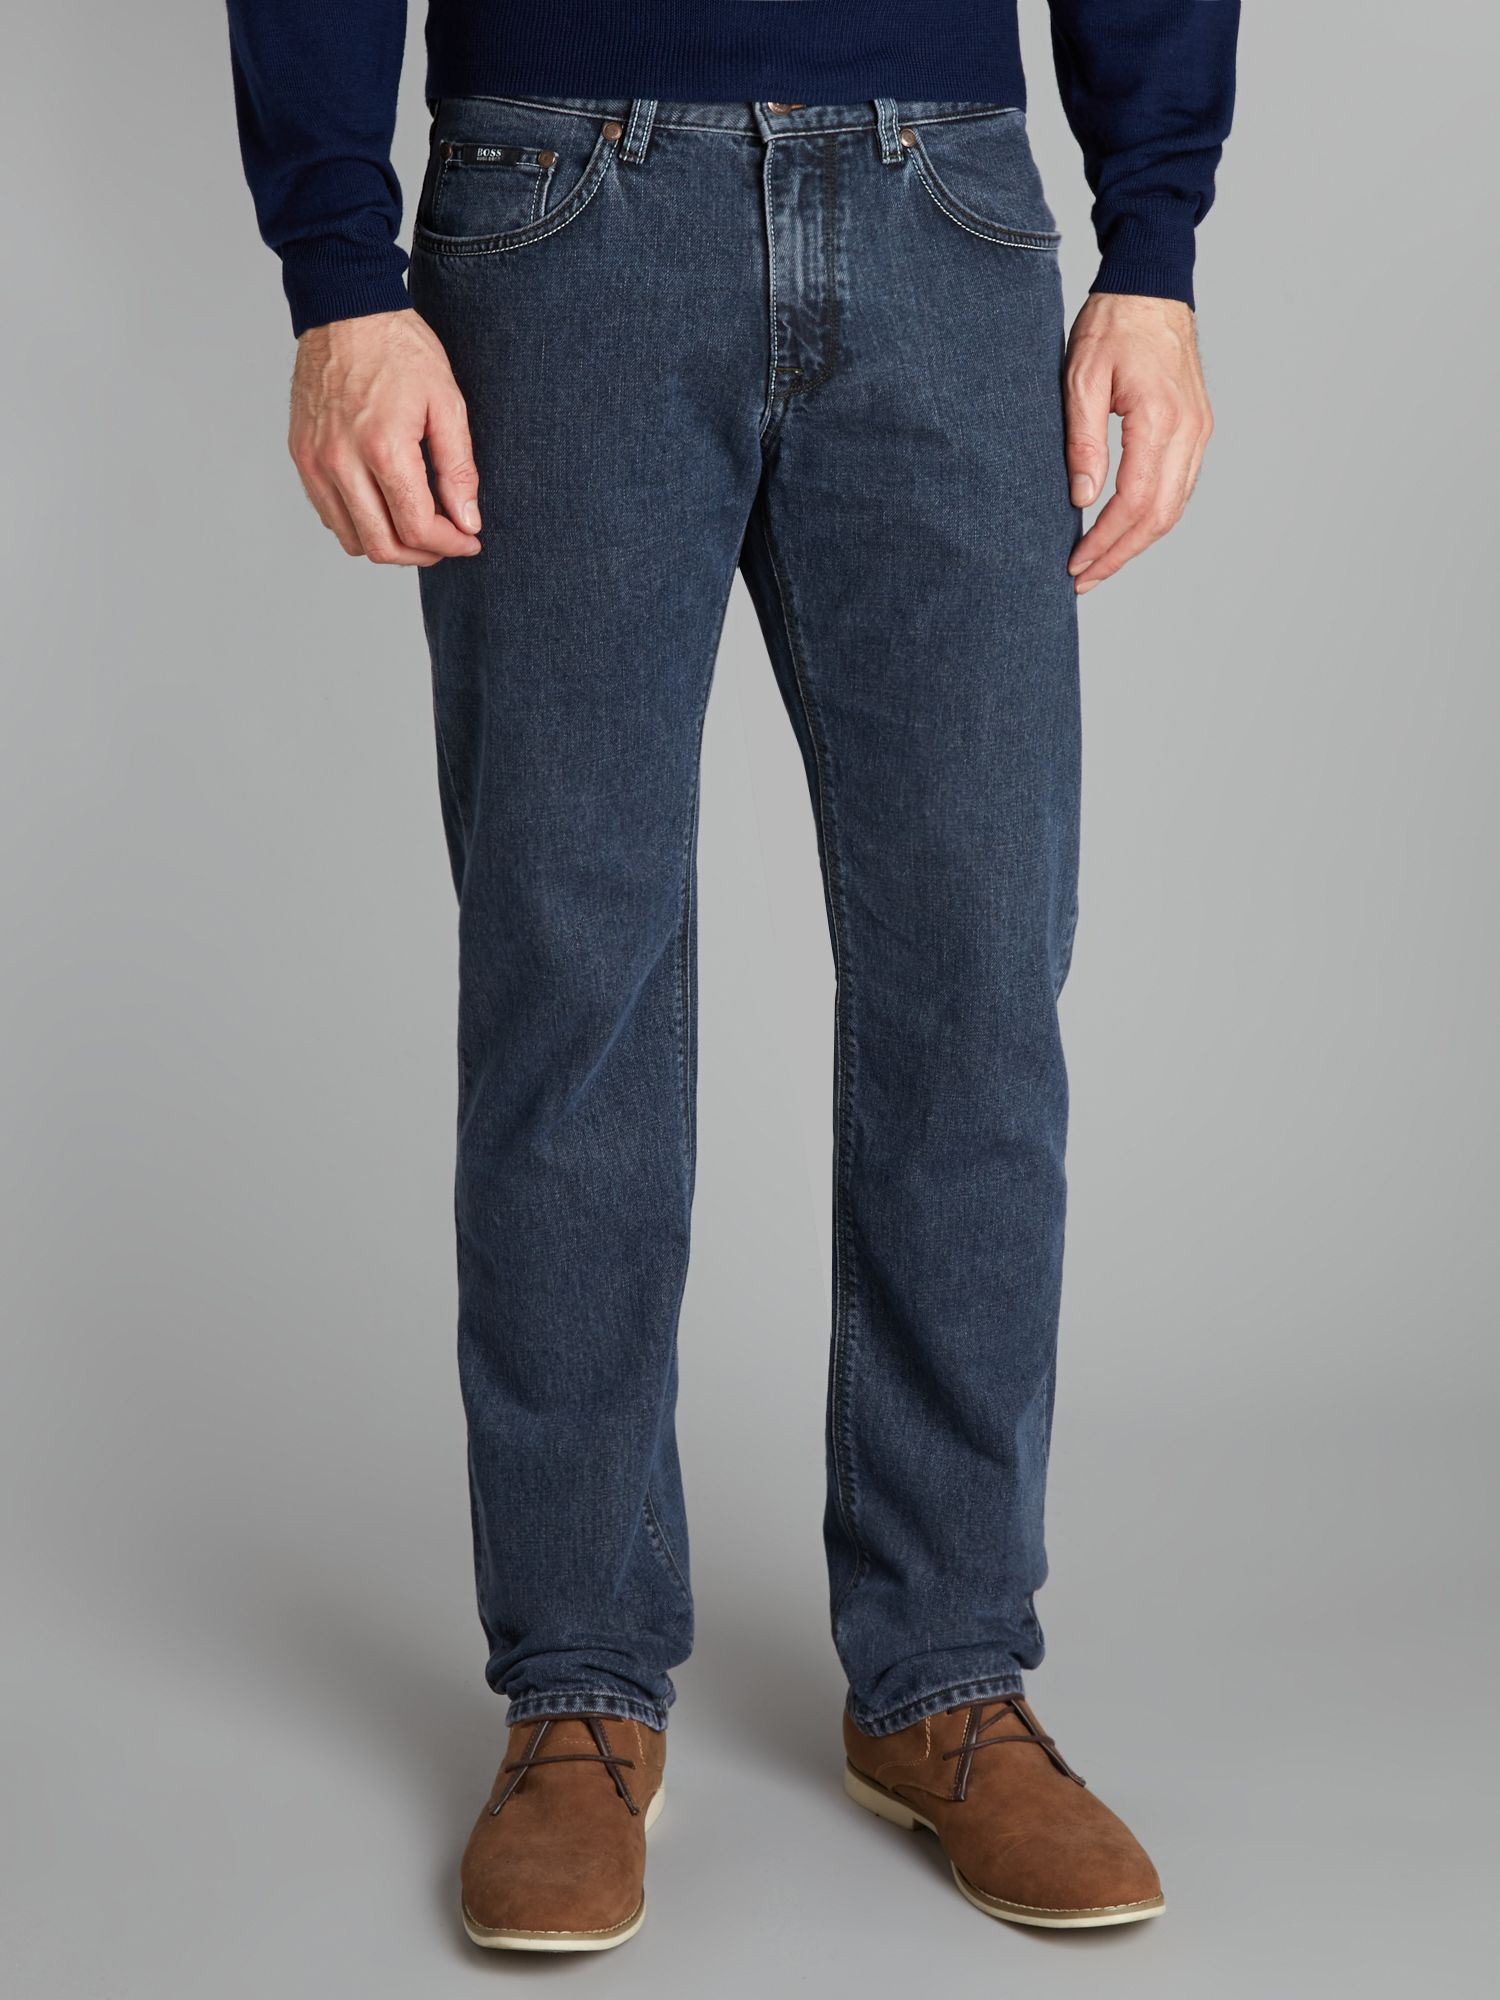 Maine regular straight jean